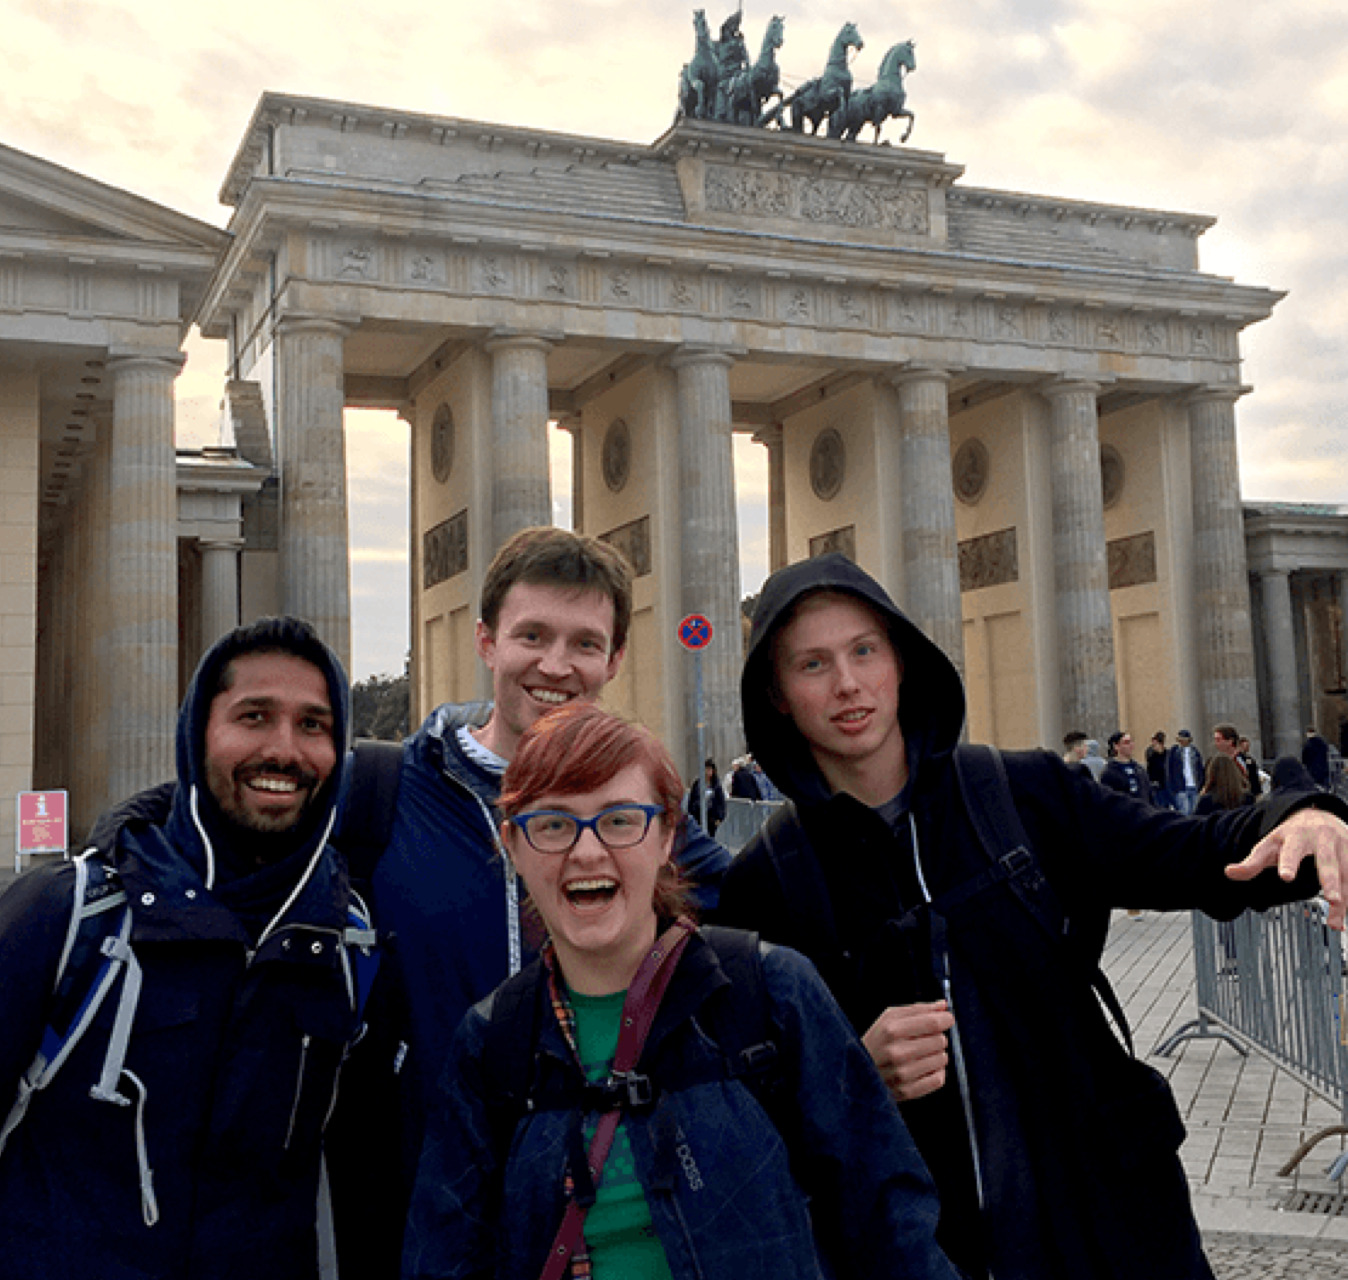 Four colleagues visiting the Brandenburg Gate in Berlin.